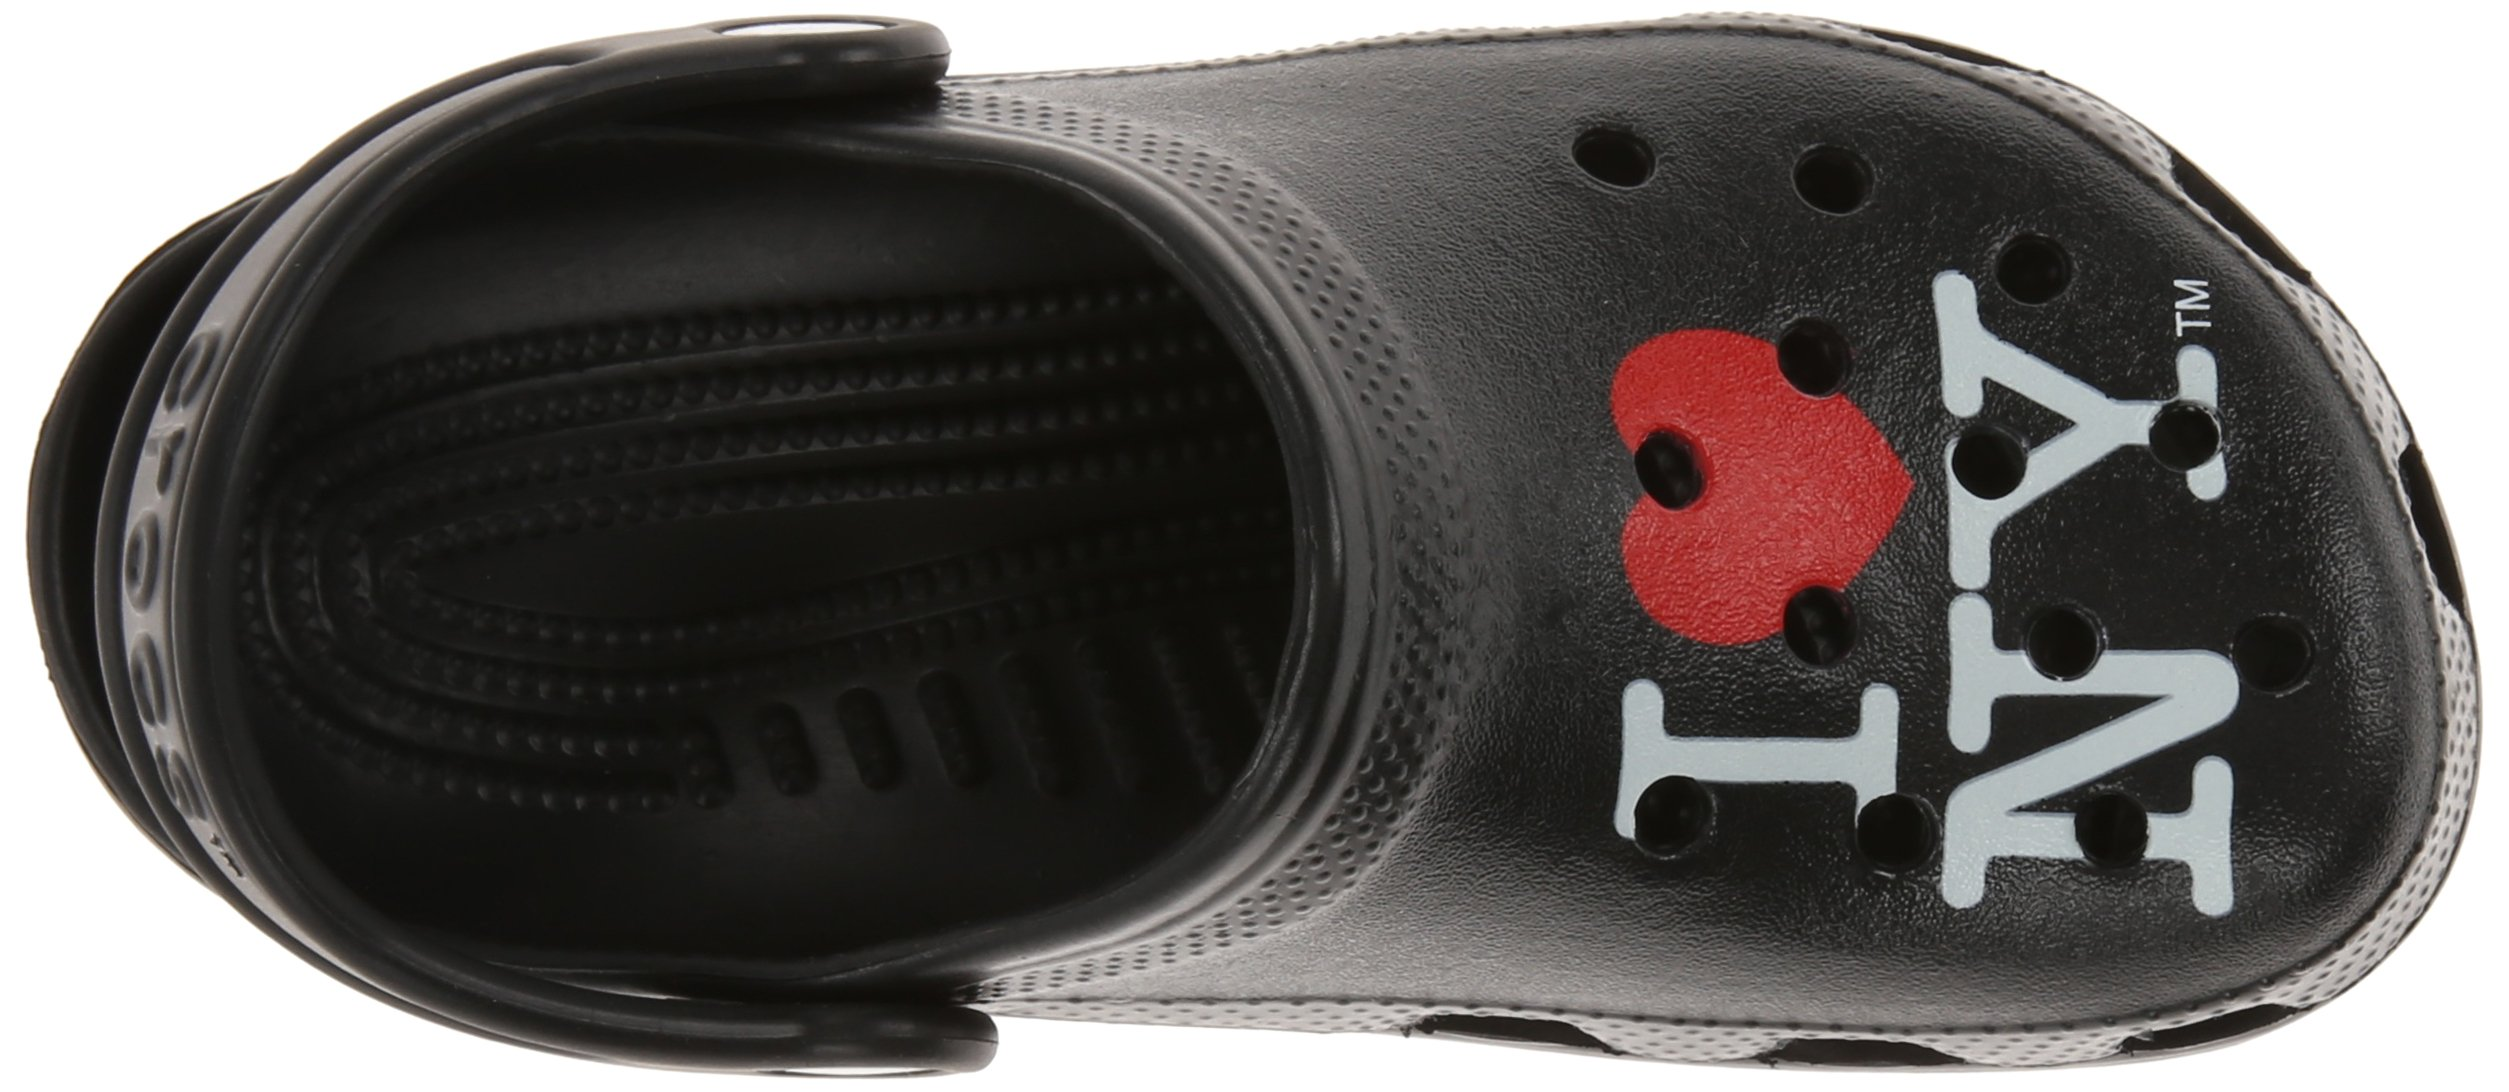 Crocs Kids 15394 I Love NY Classic Clog (Toddler/Little Kid),Black,8 M US Toddler by Crocs (Image #8)